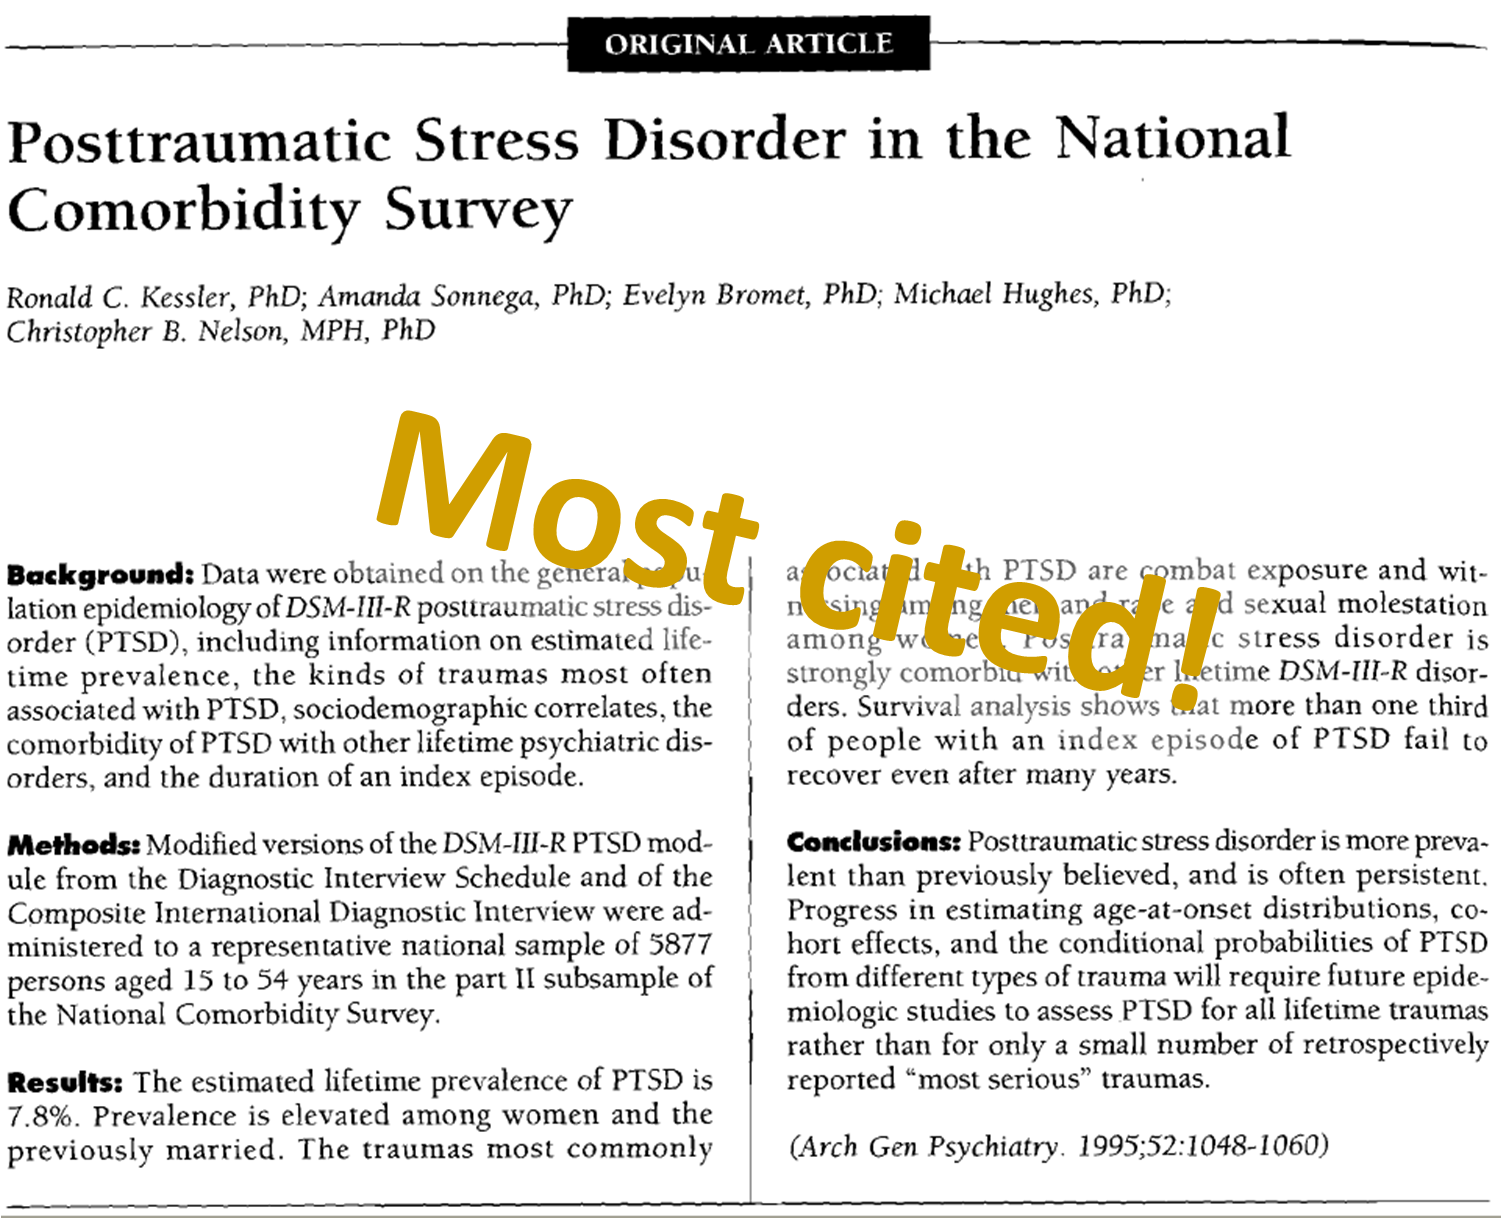 007 Latest Research On Post Traumatic Stress Disorder Paper Trauma Recovery Most Cited Magnificent Information Topics Full